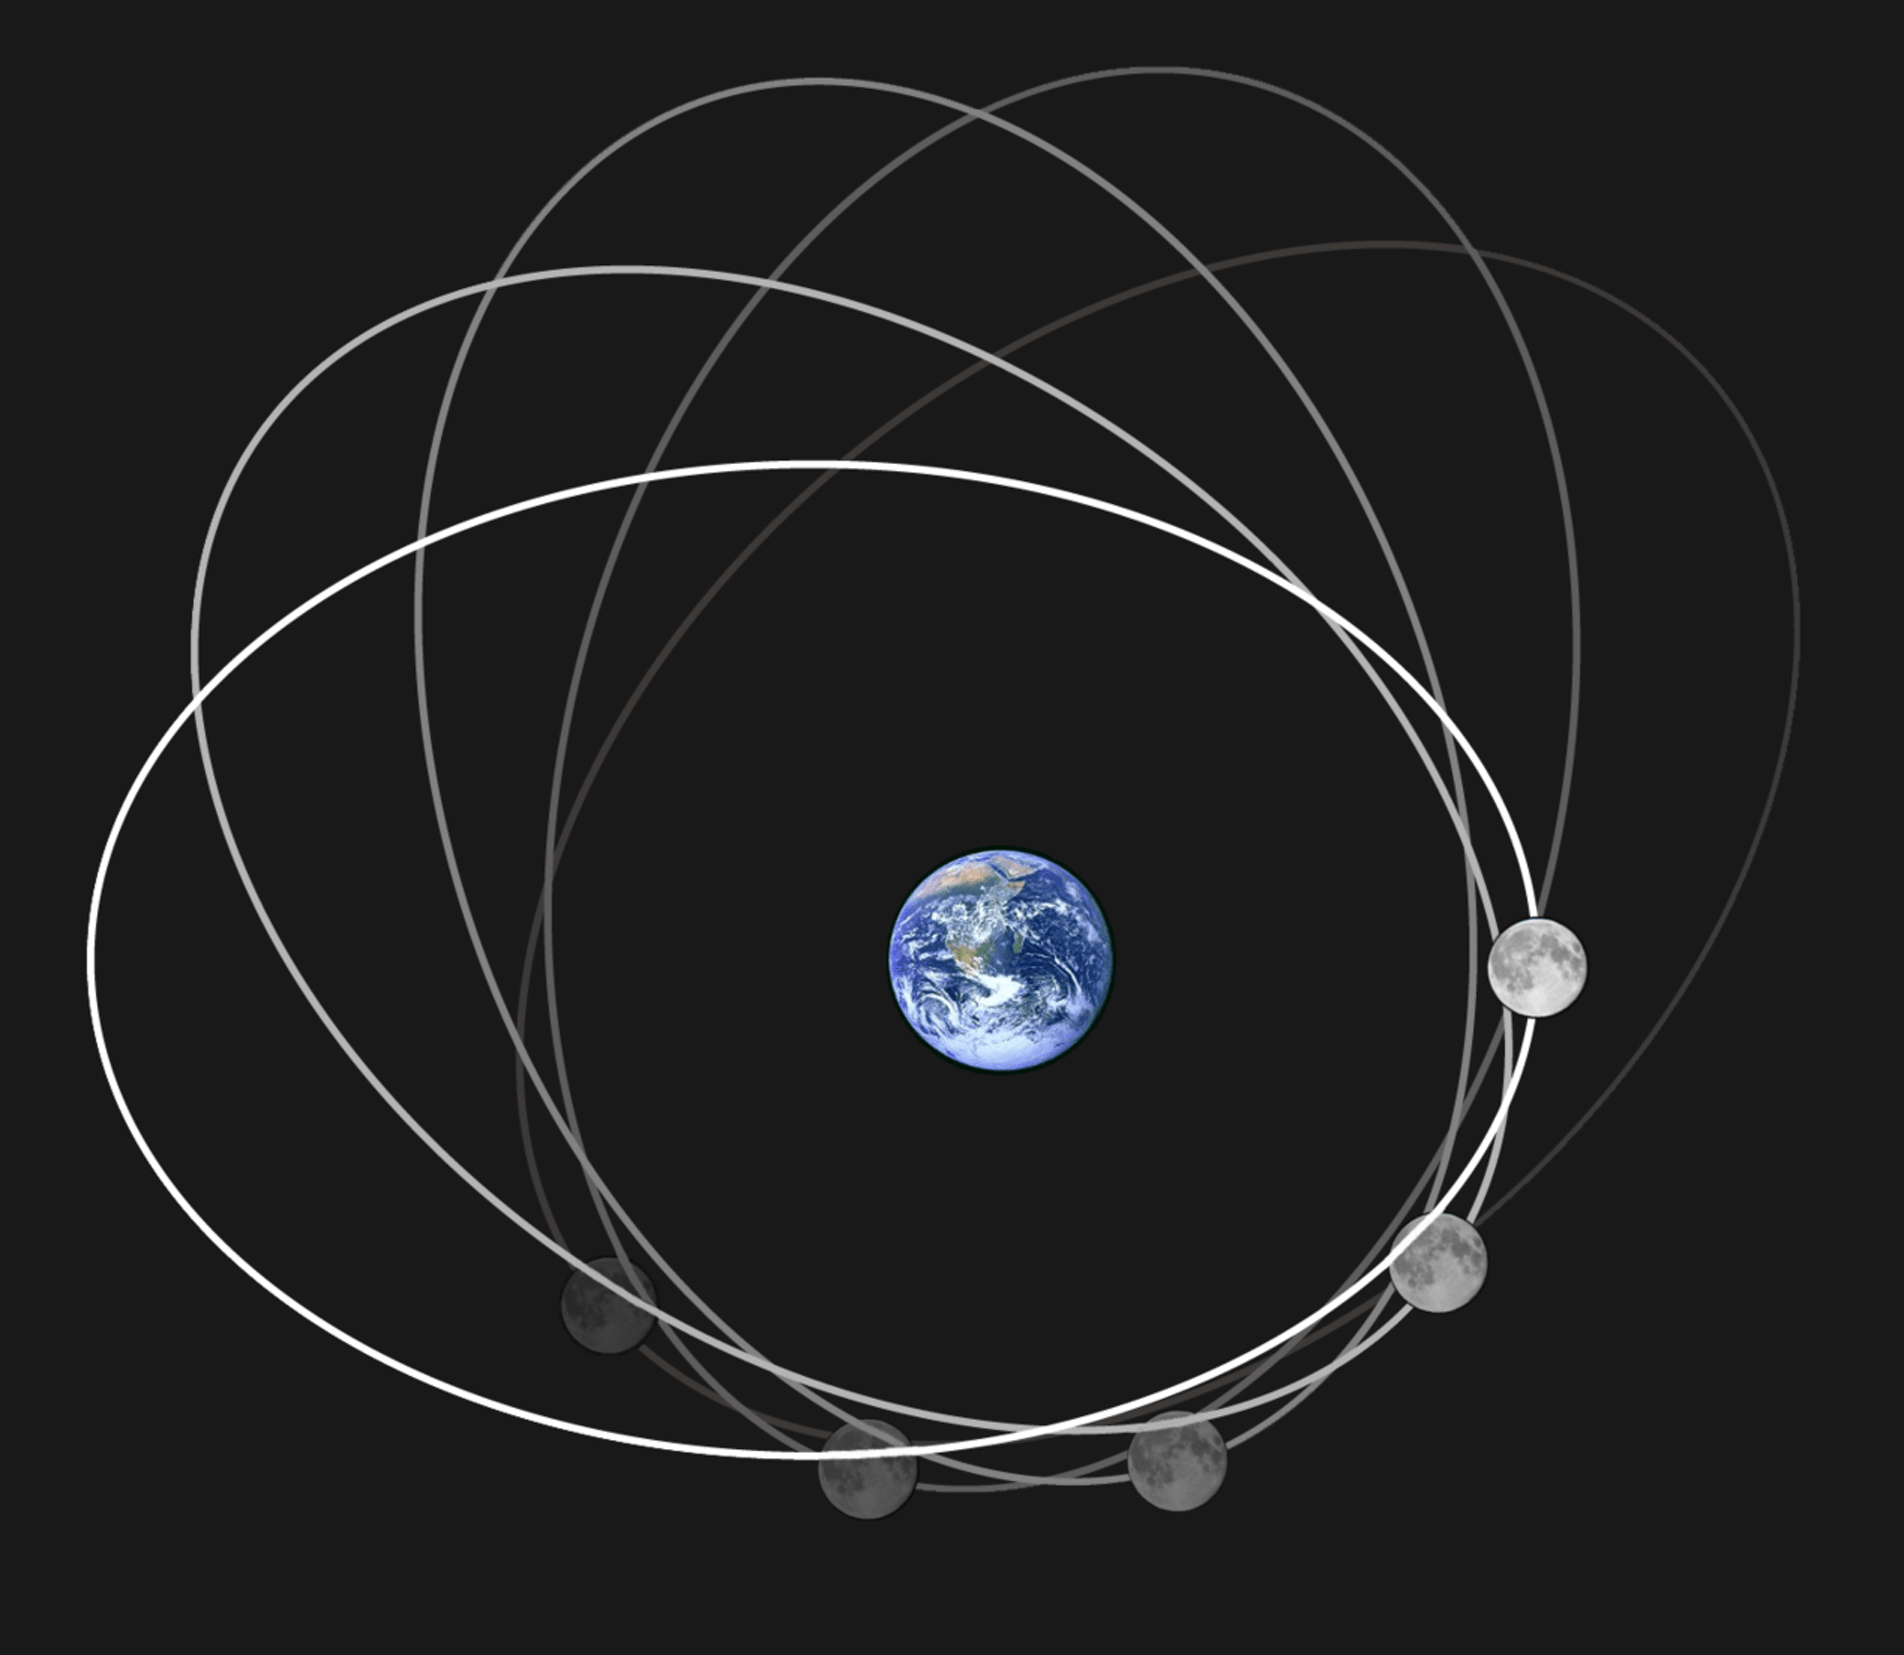 The moon's orbit is elliptical and changes over time